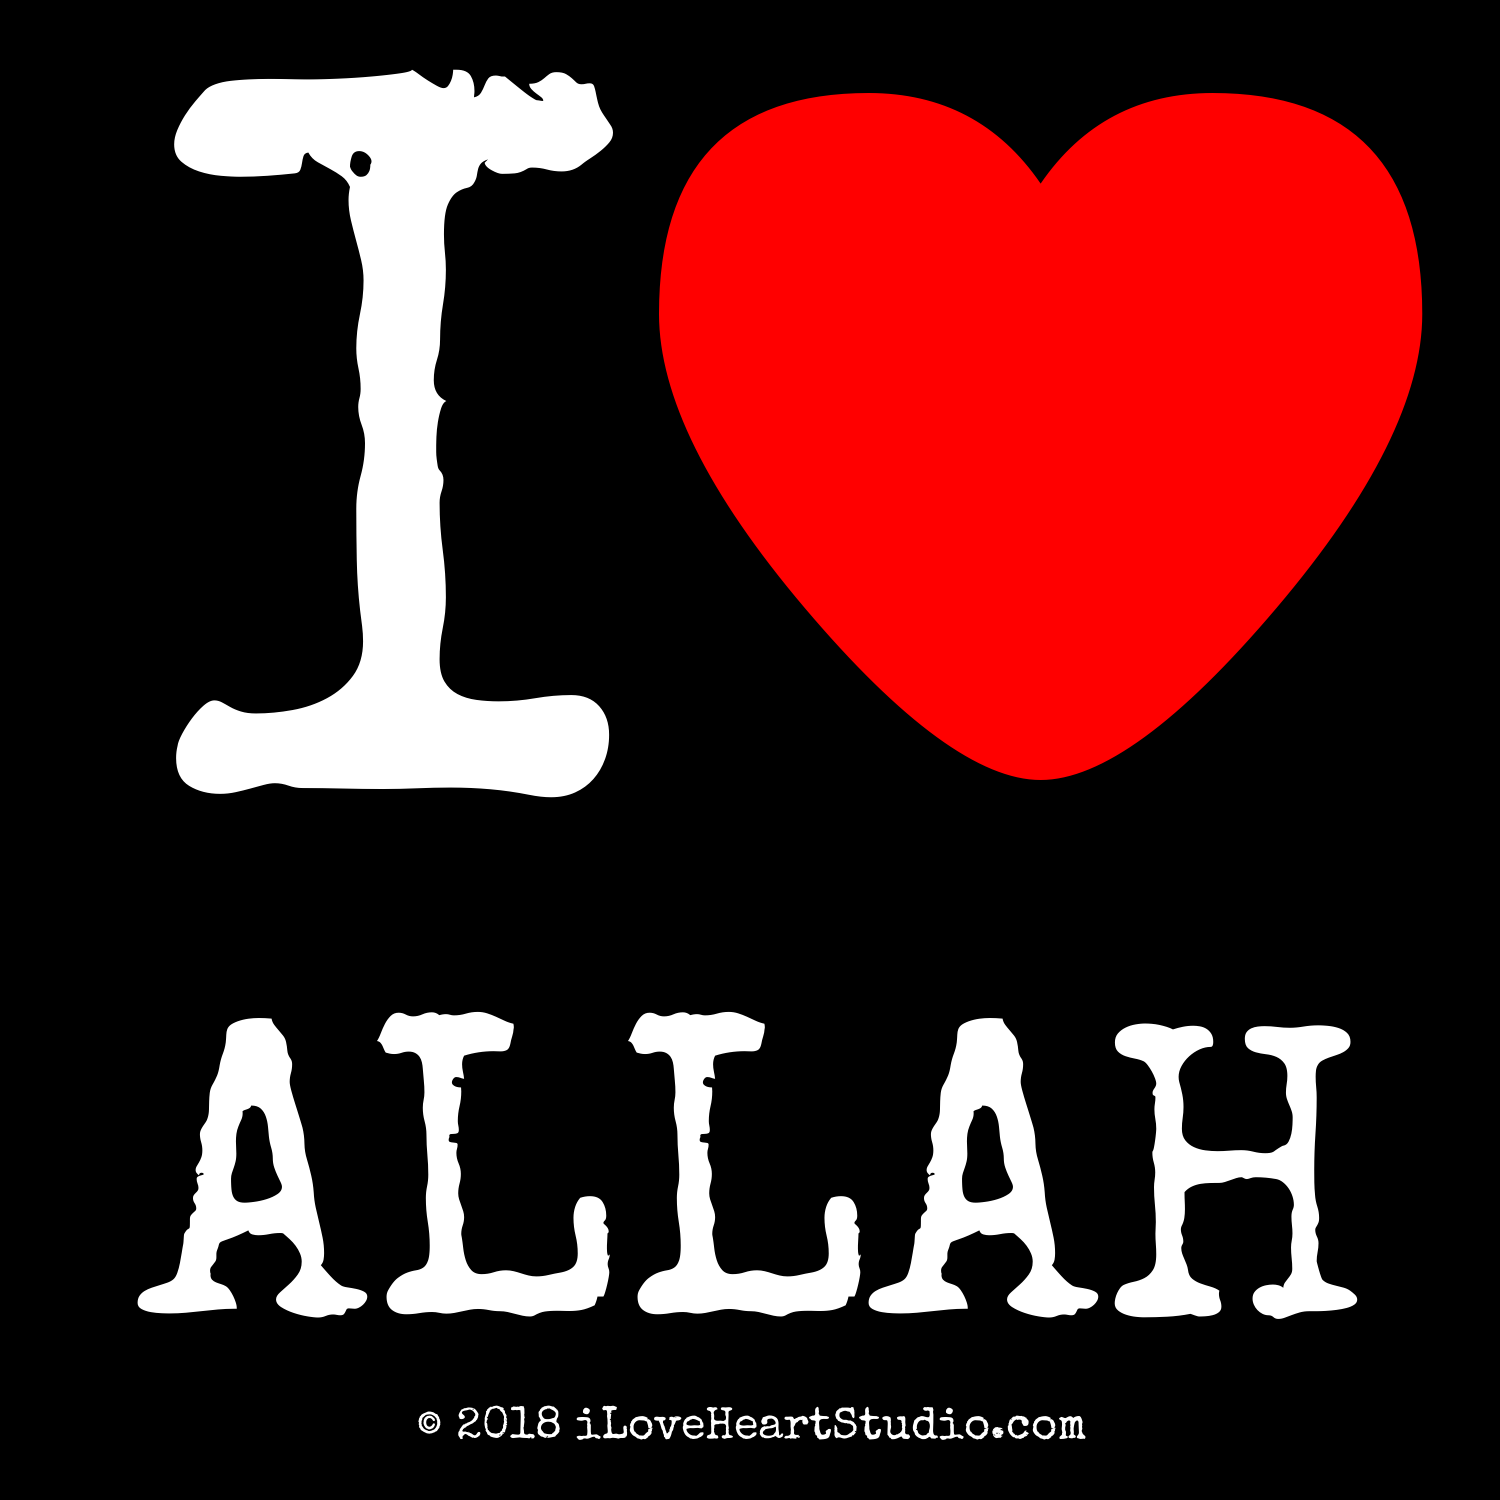 Love Wallpaper Allah : I Love You Allah Related Keywords - I Love You Allah Long Tail Keywords KeywordsKing